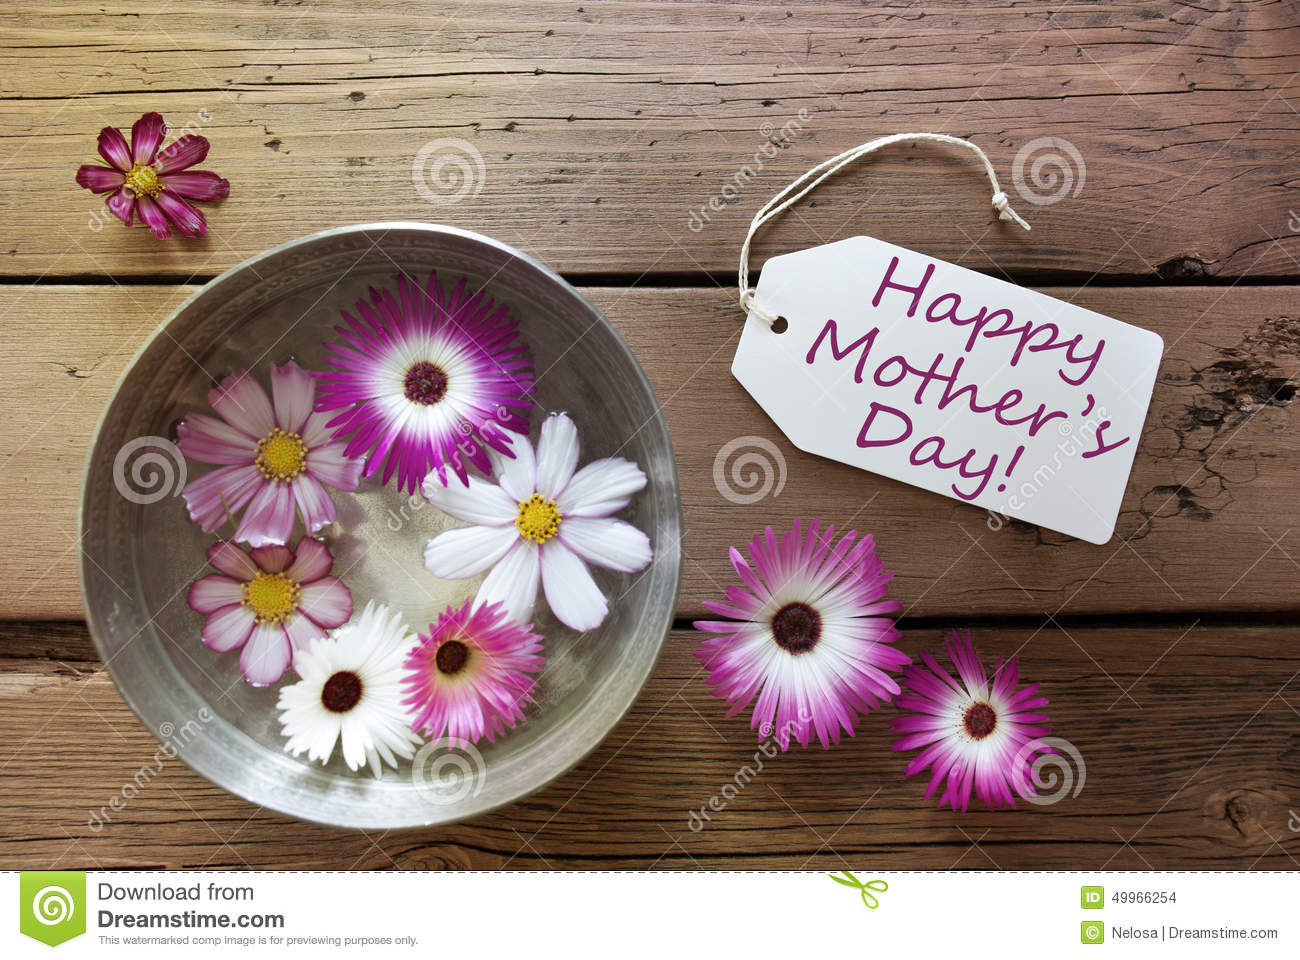 Silver Bowl With Cosmea Blossoms With Text Happy Mothers Day